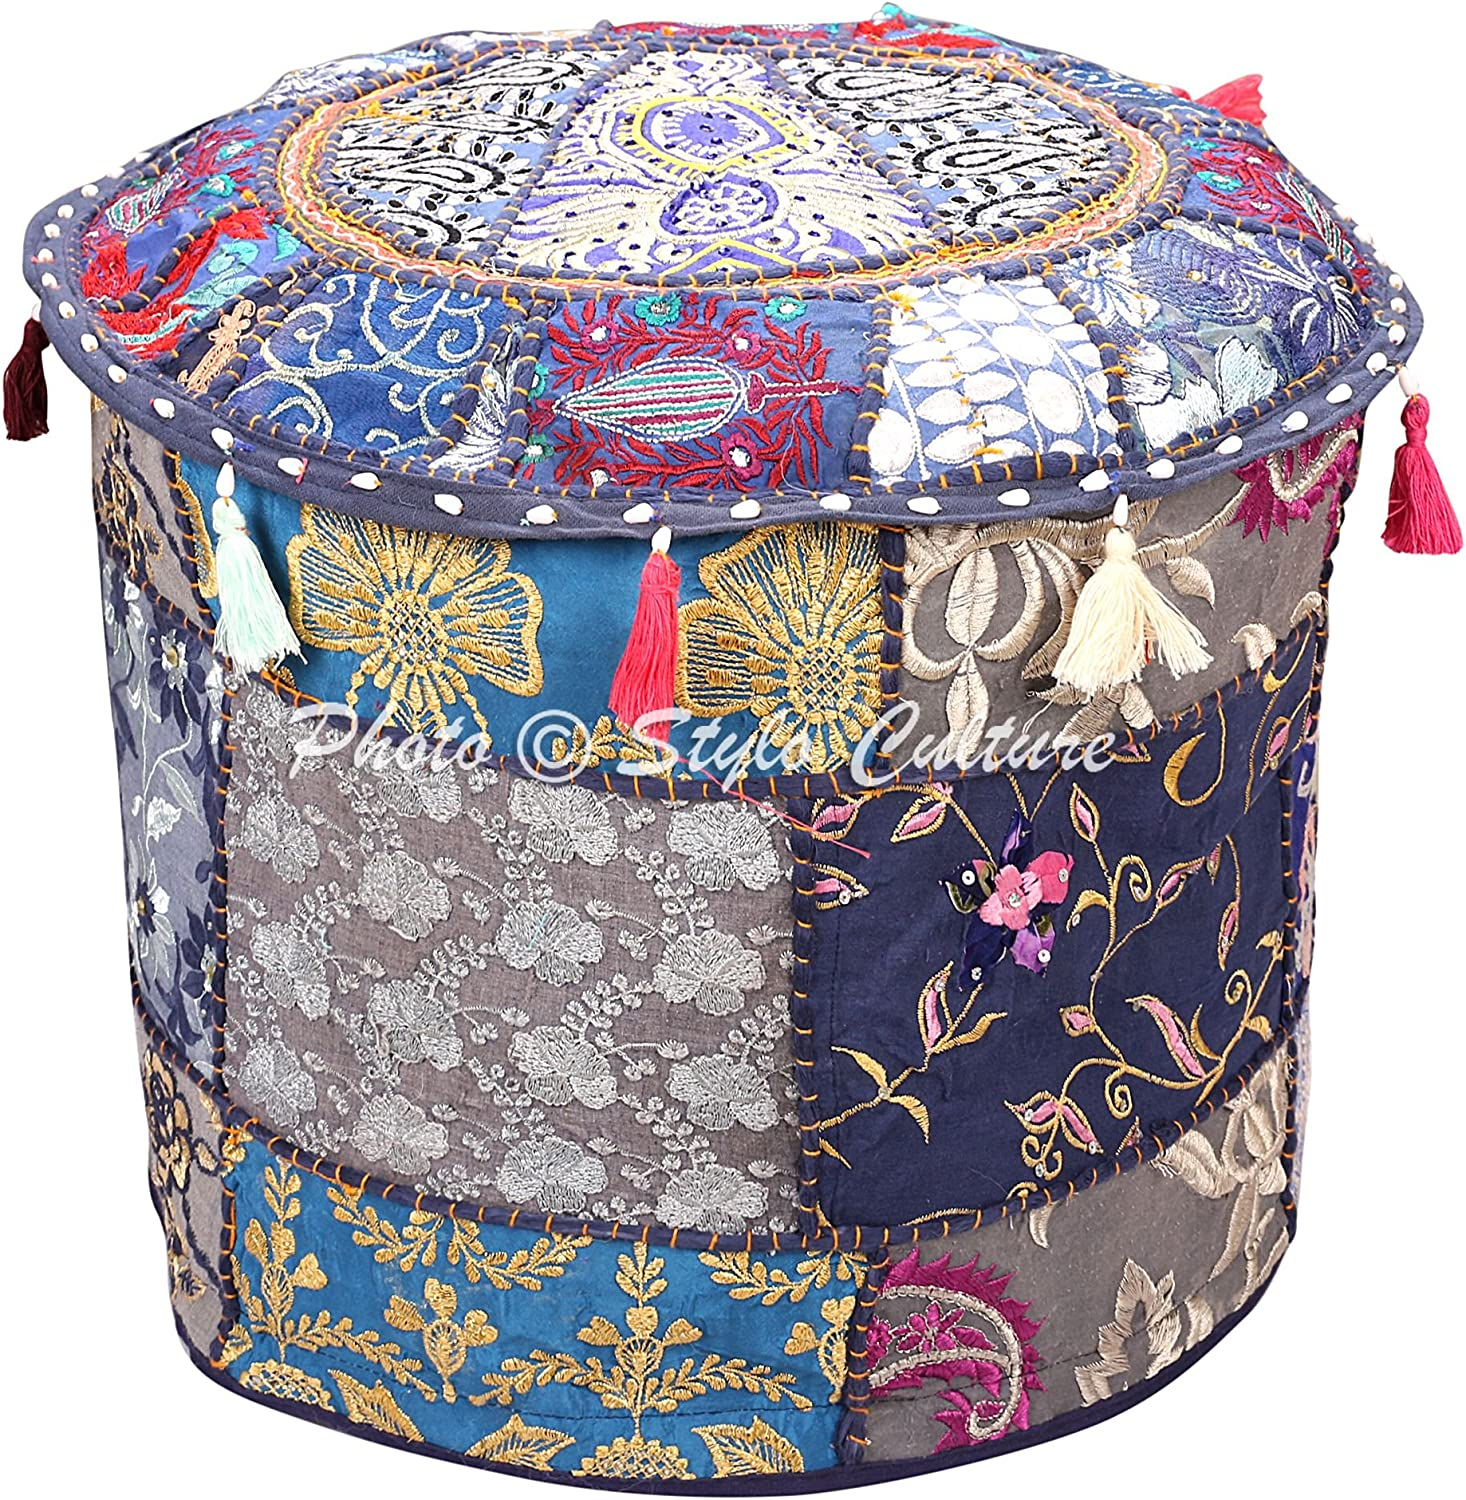 Stylo Culture Indian Pouffe Footstool Cover Round Patchwork Embroidered Pouf Ottoman Blue Cotton Floral Traditional Furniture Seat Puff (16x16x13) Bean Bag Home Decor